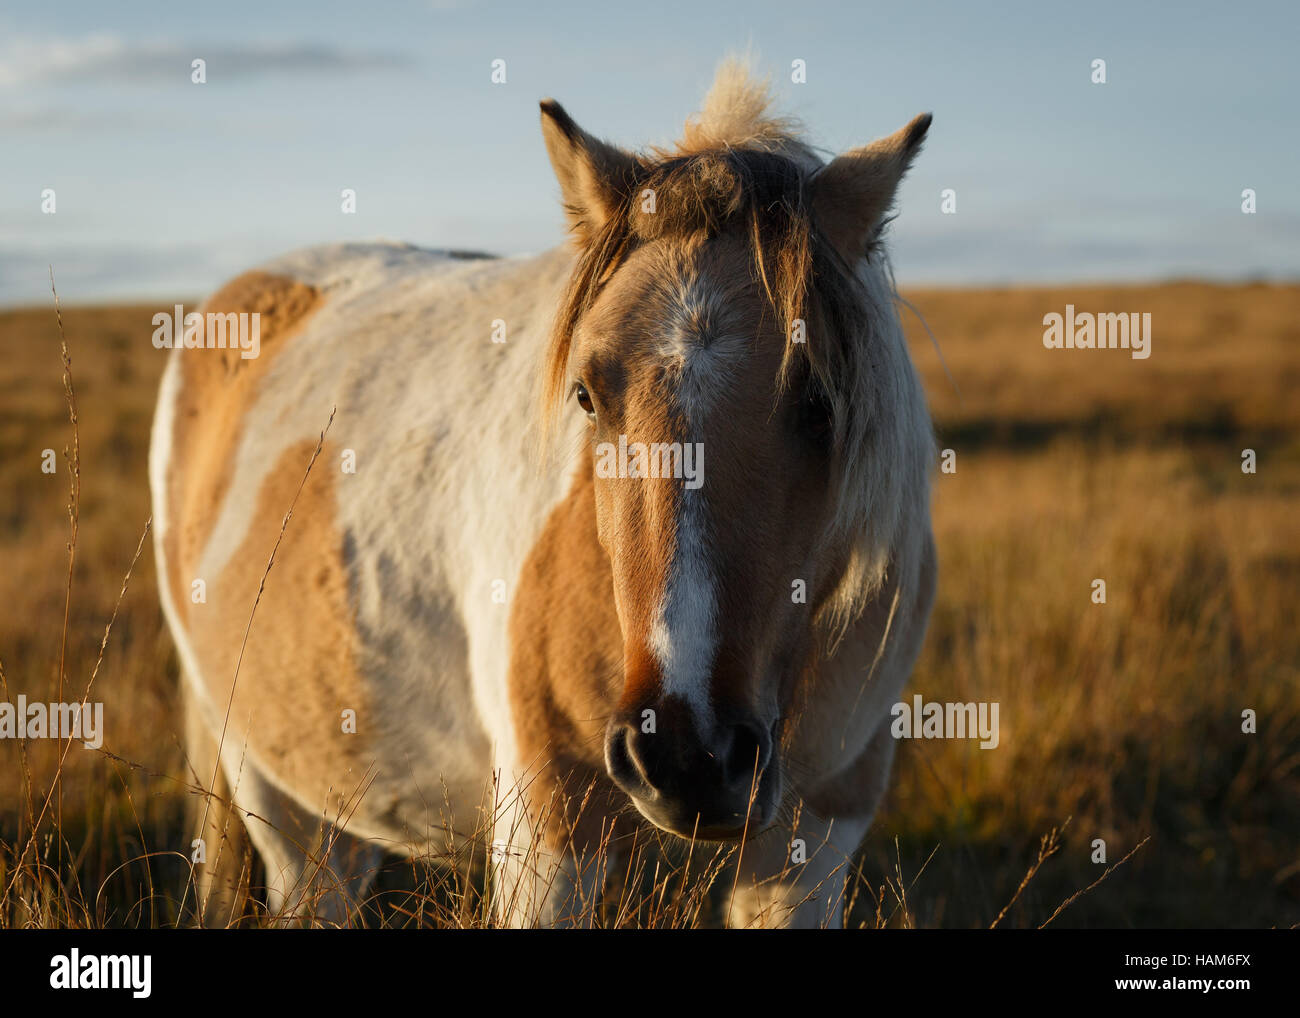 Dartmoor pony in a grassy field Stock Photo